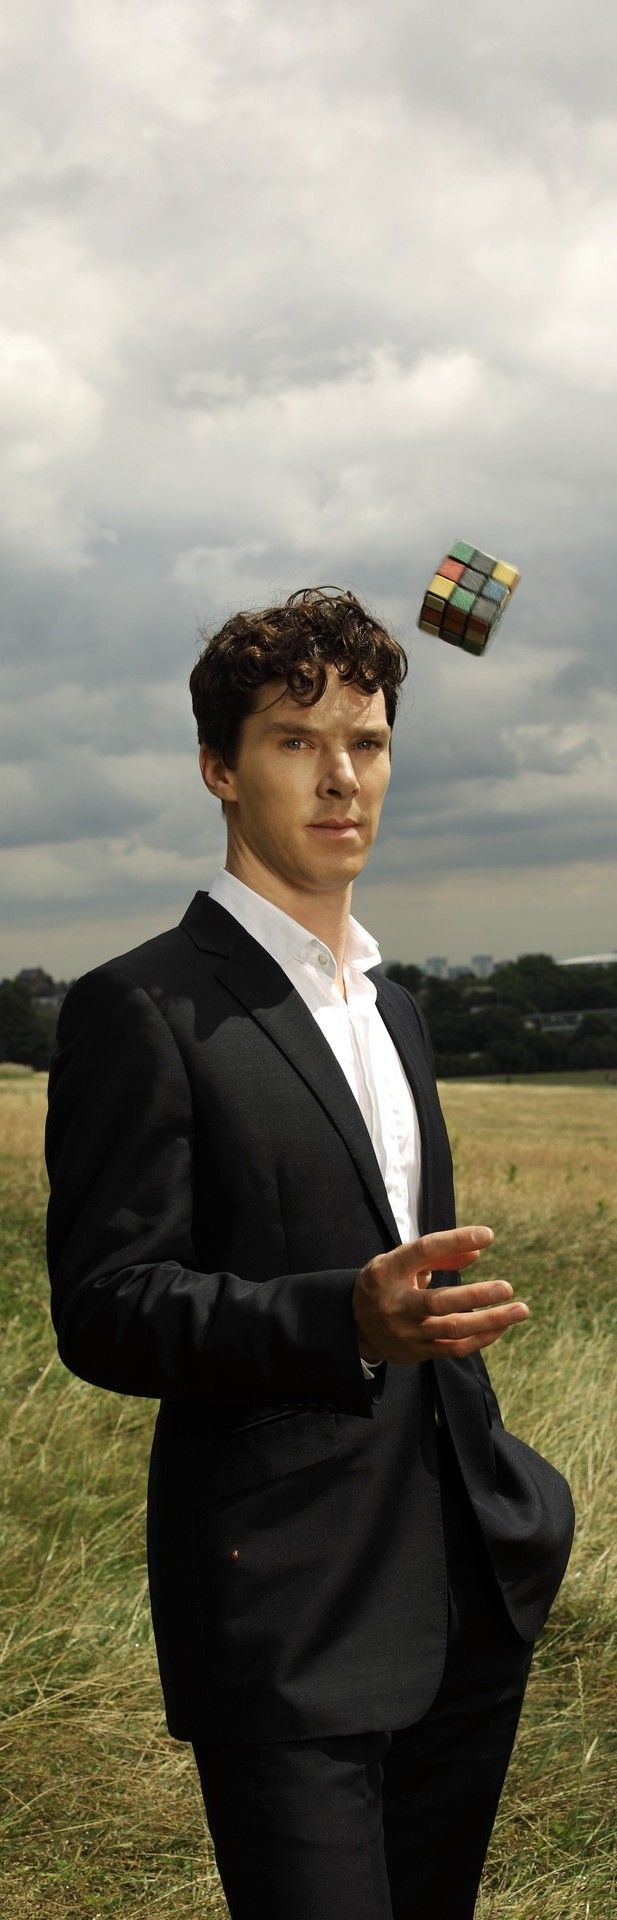 Benedict Cumberbatch The Sunday Times Photoshoot